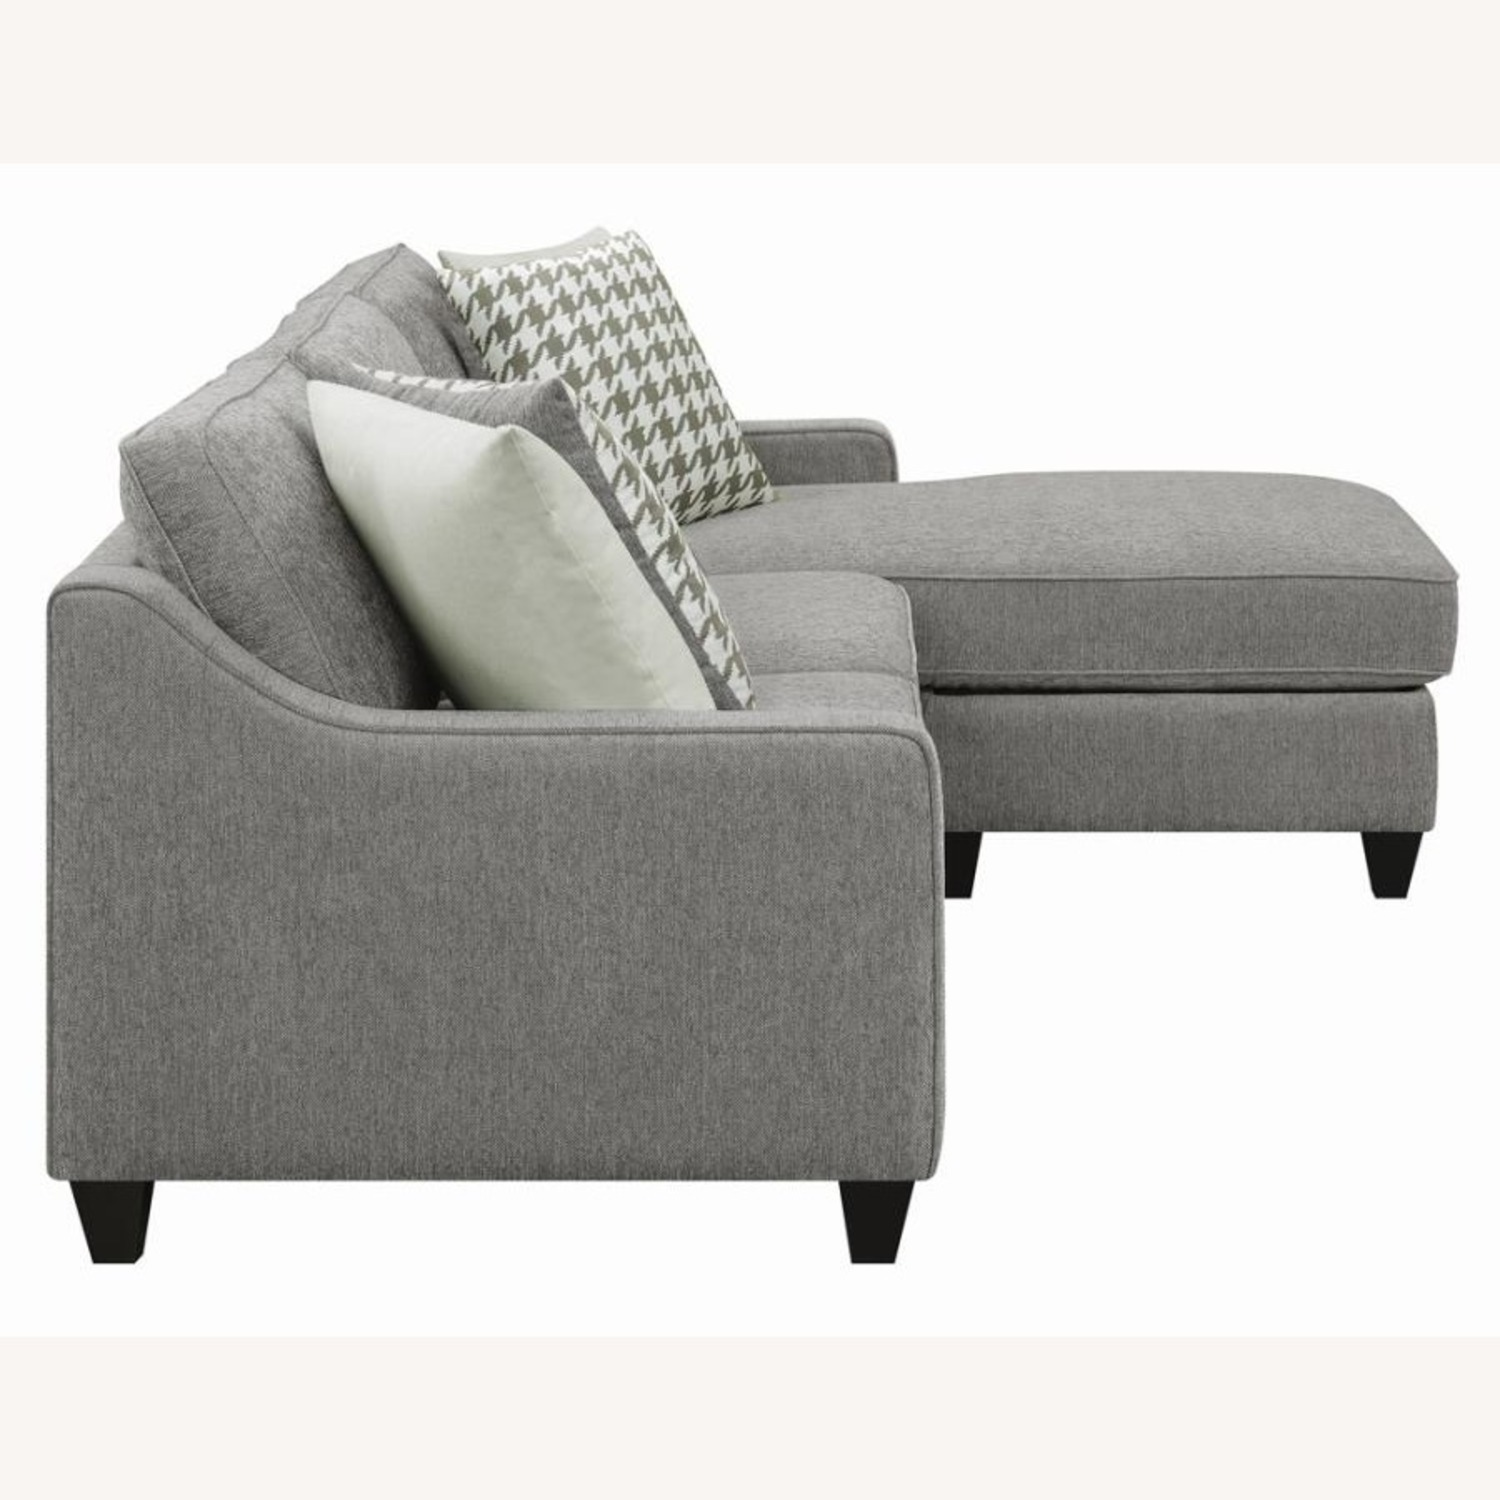 Sectional In Charcoal Chevron Dobby Upholstery - image-4